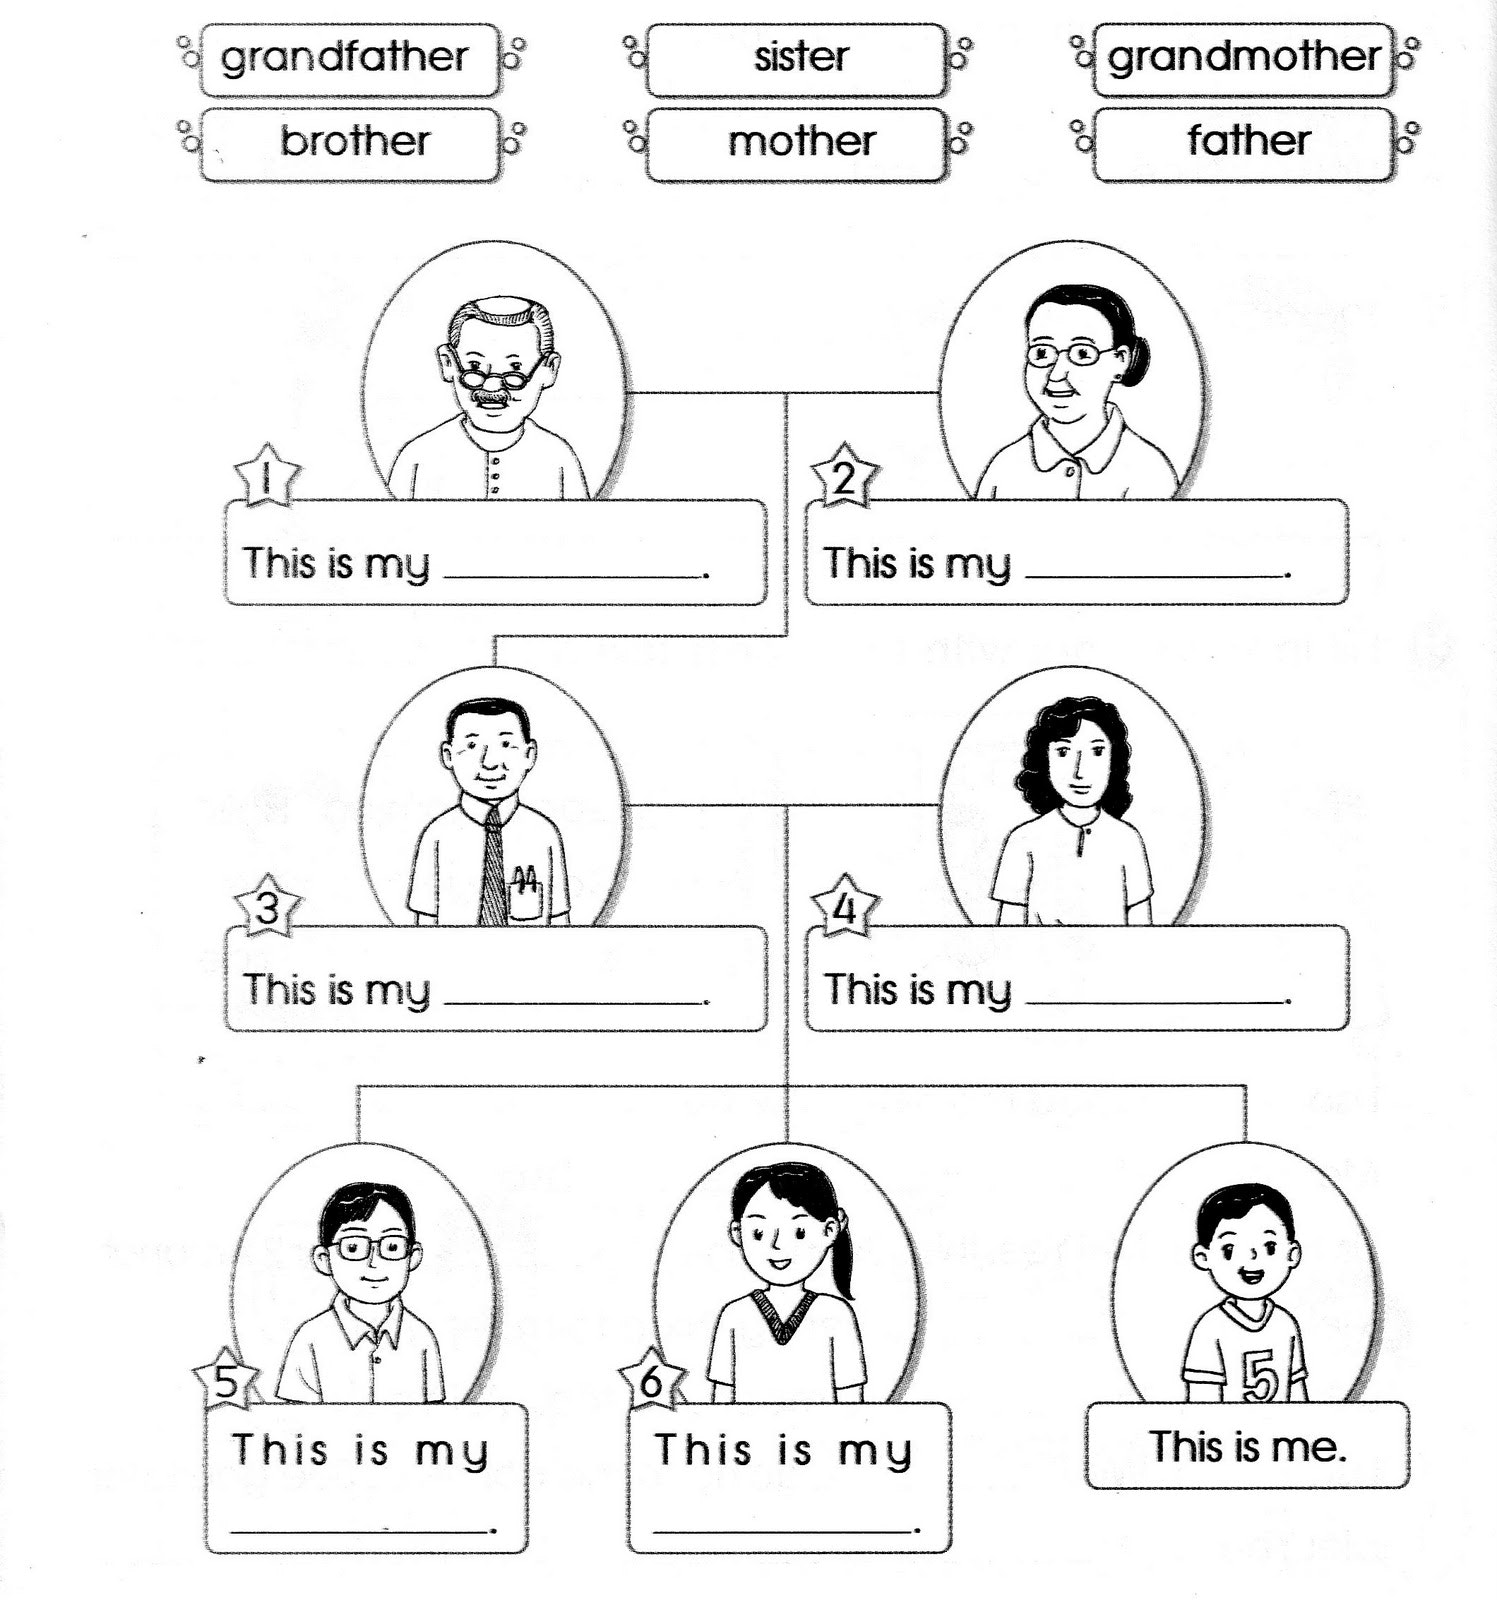 Worksheet On My Family For Grade 1 Choice Image